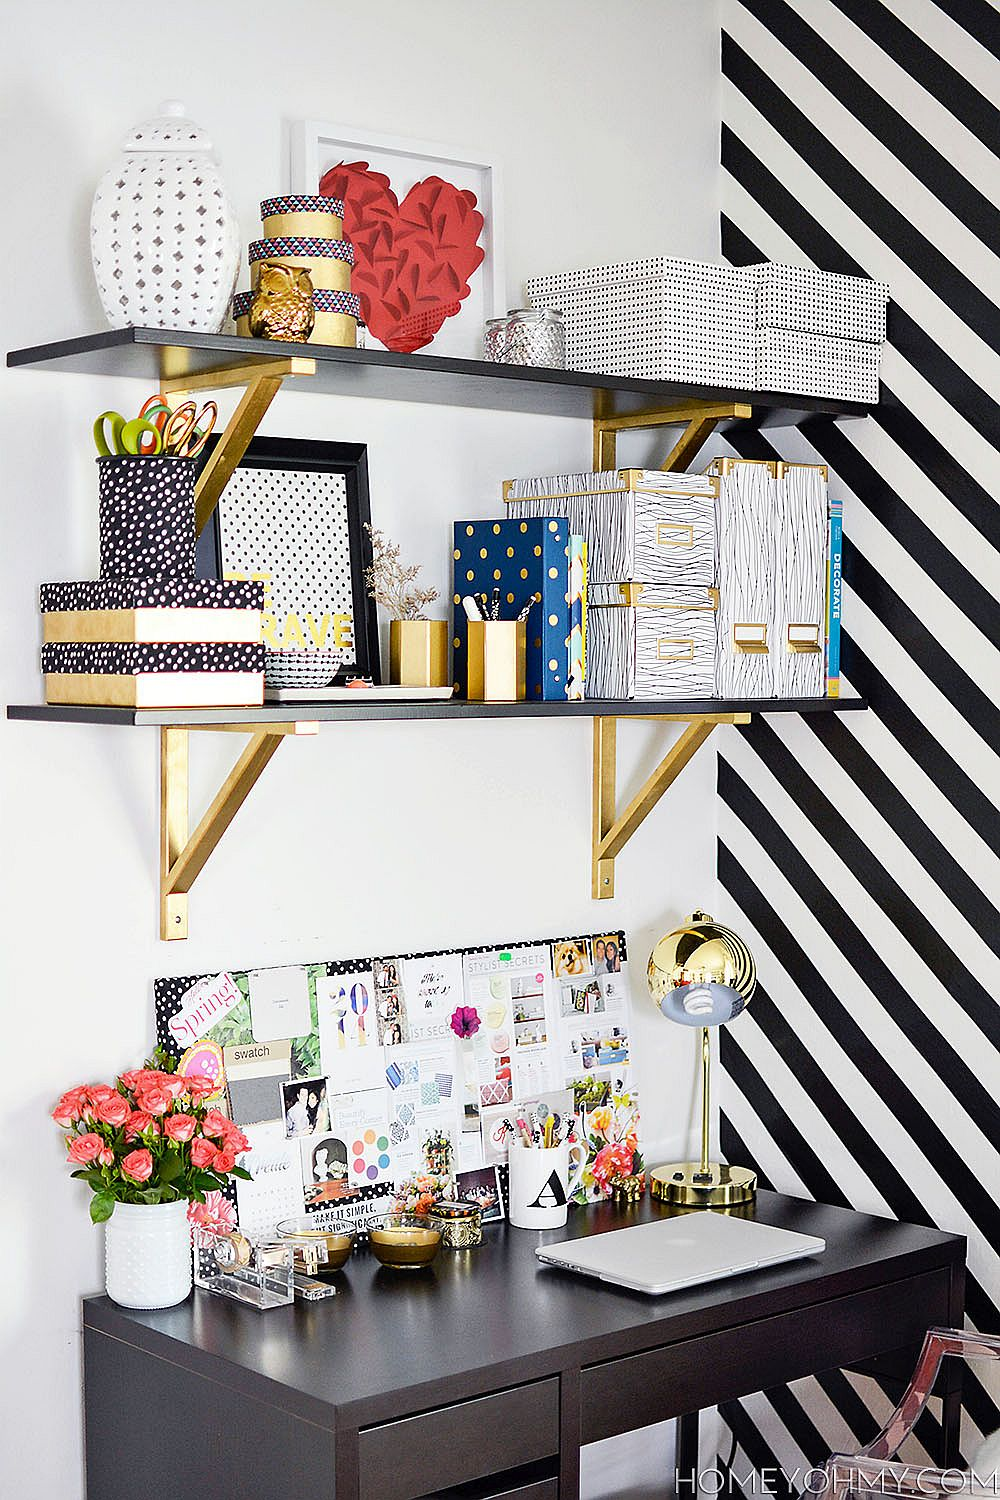 Gold spray paint transforms the mundane home office shelf